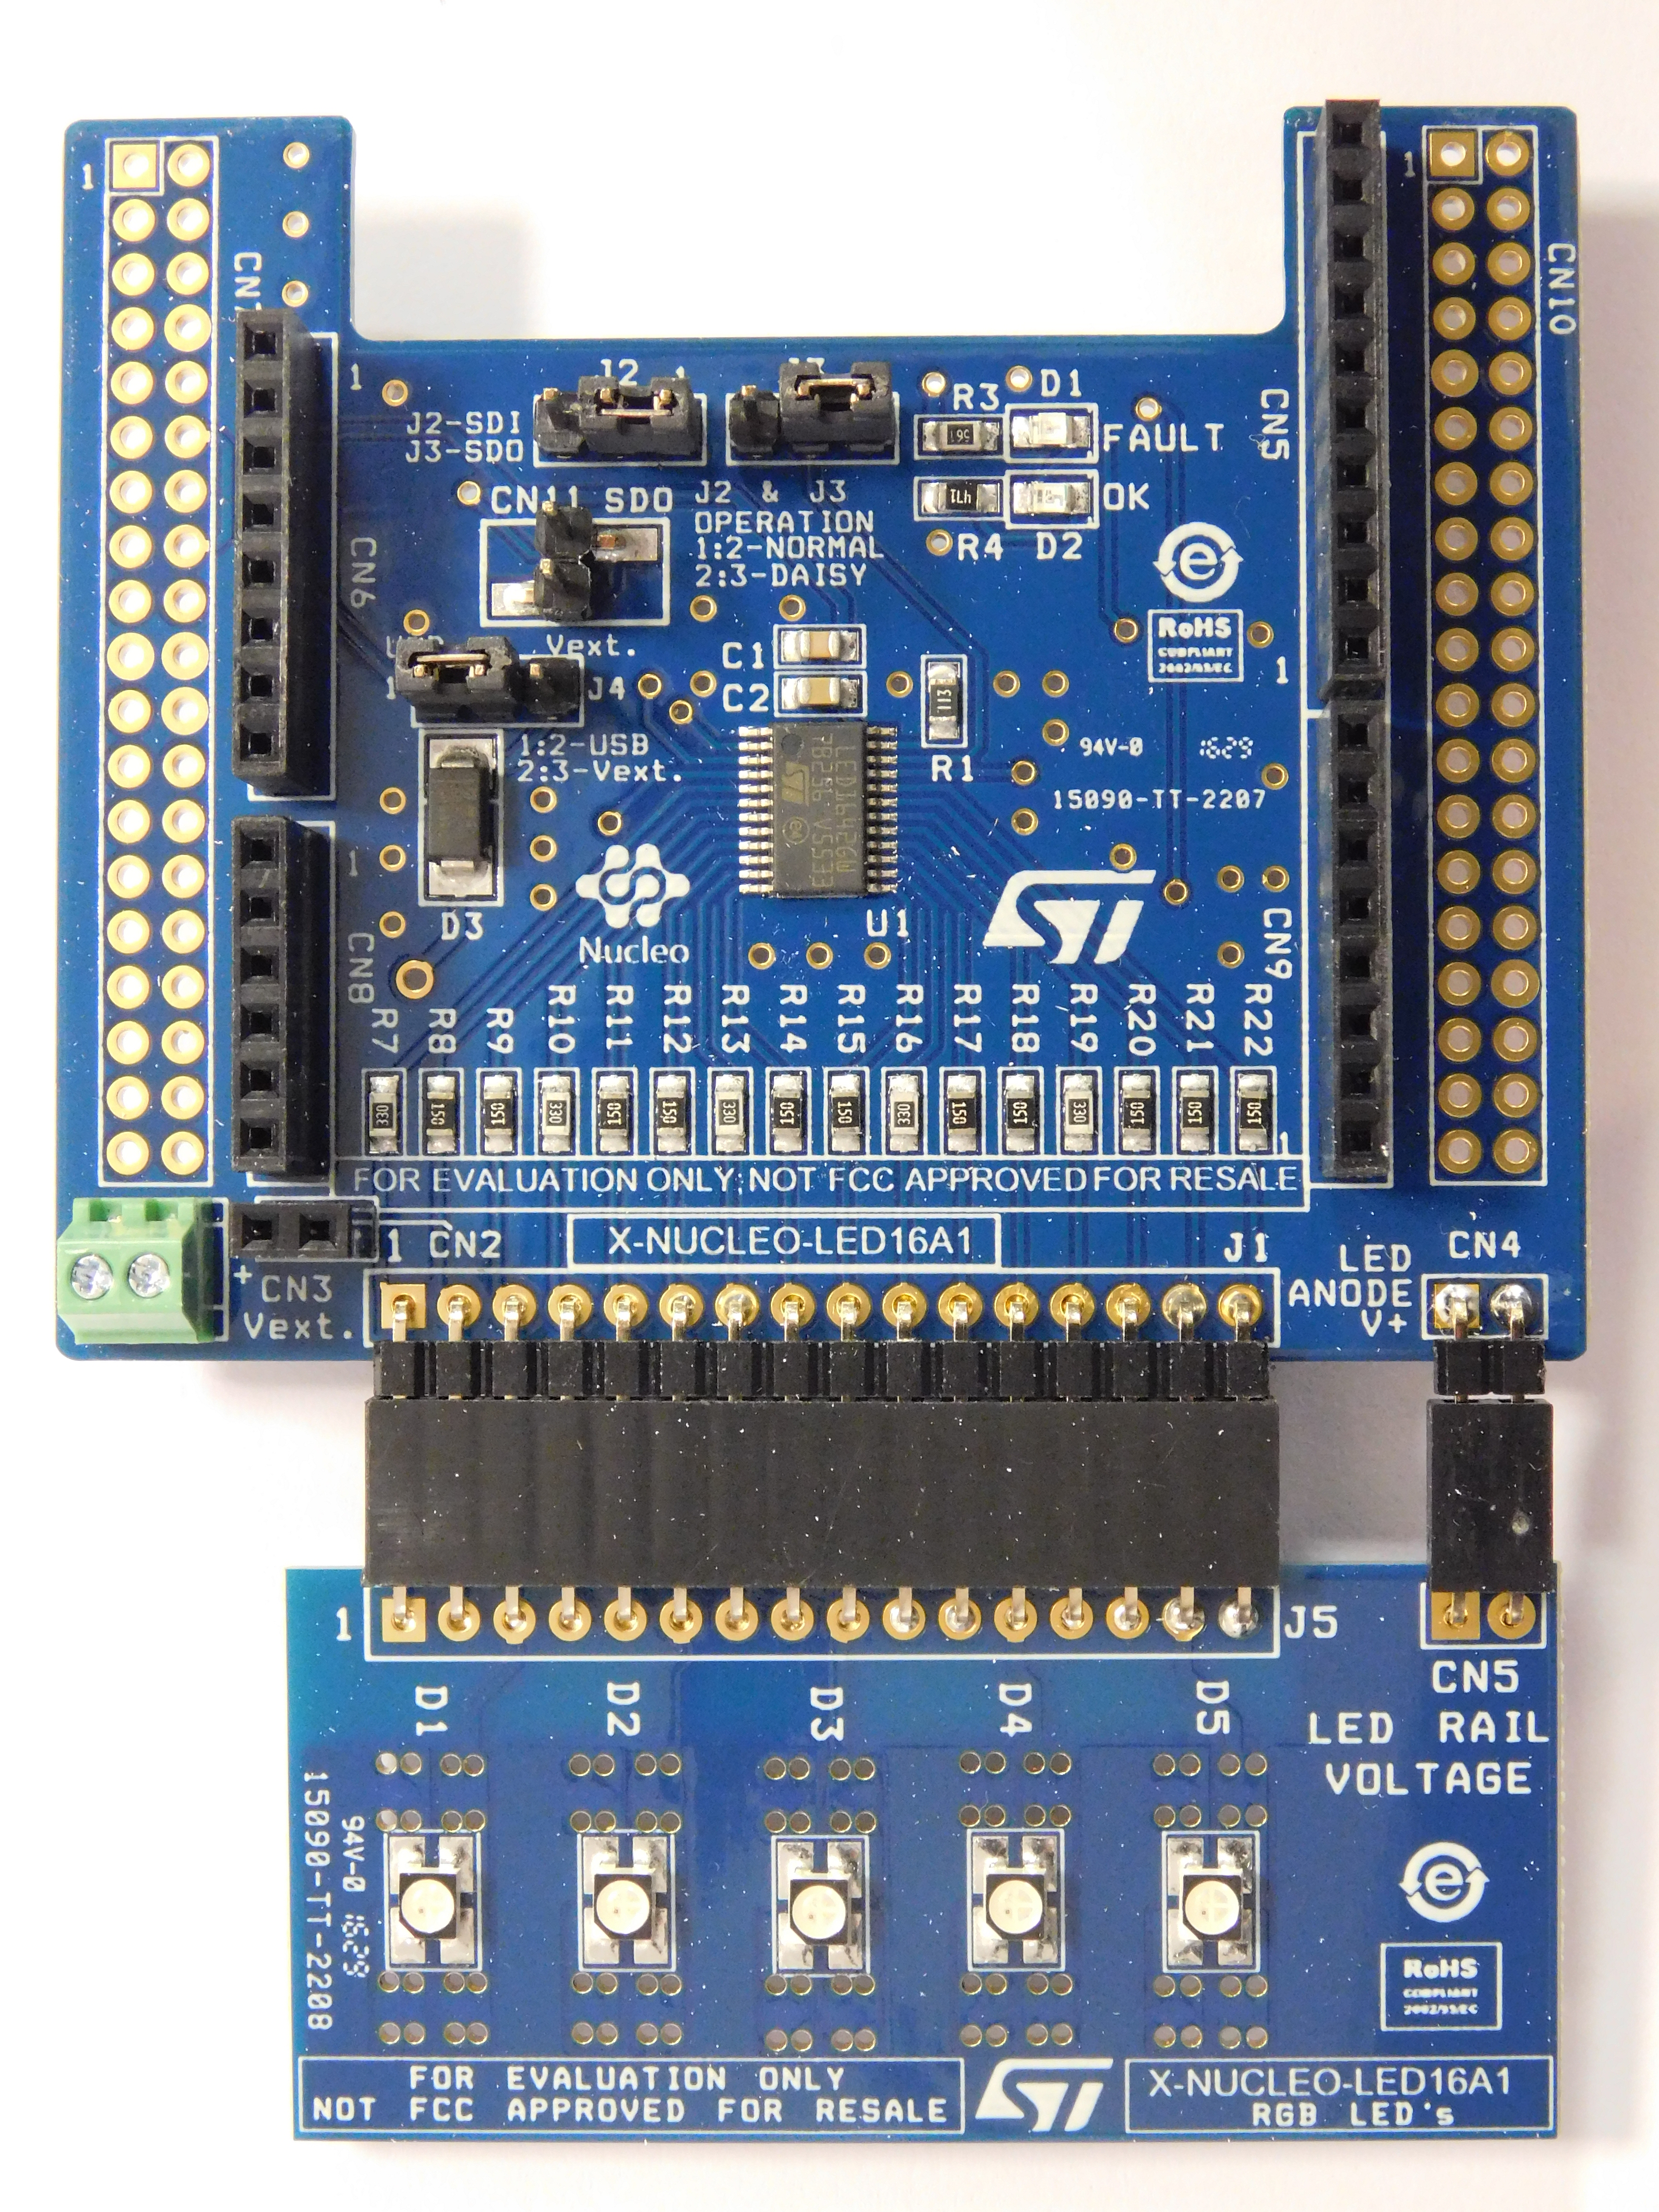 16 channel LED driver expansion board based on LED1642GW for STM32 Nucleo